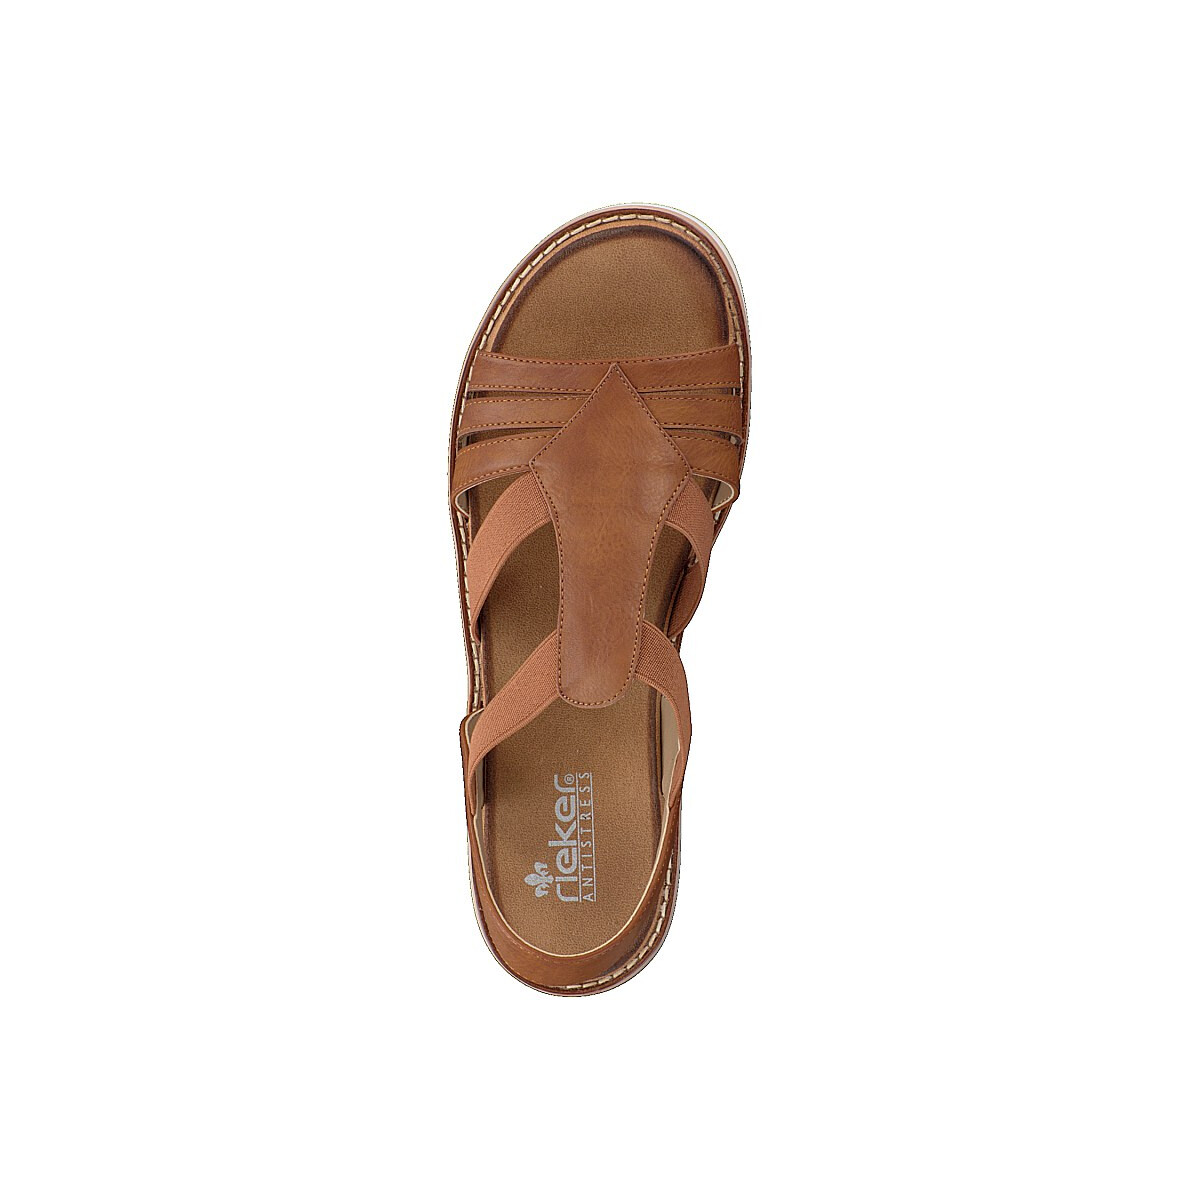 Rieker women sandal brown V6473 24 cWKpu